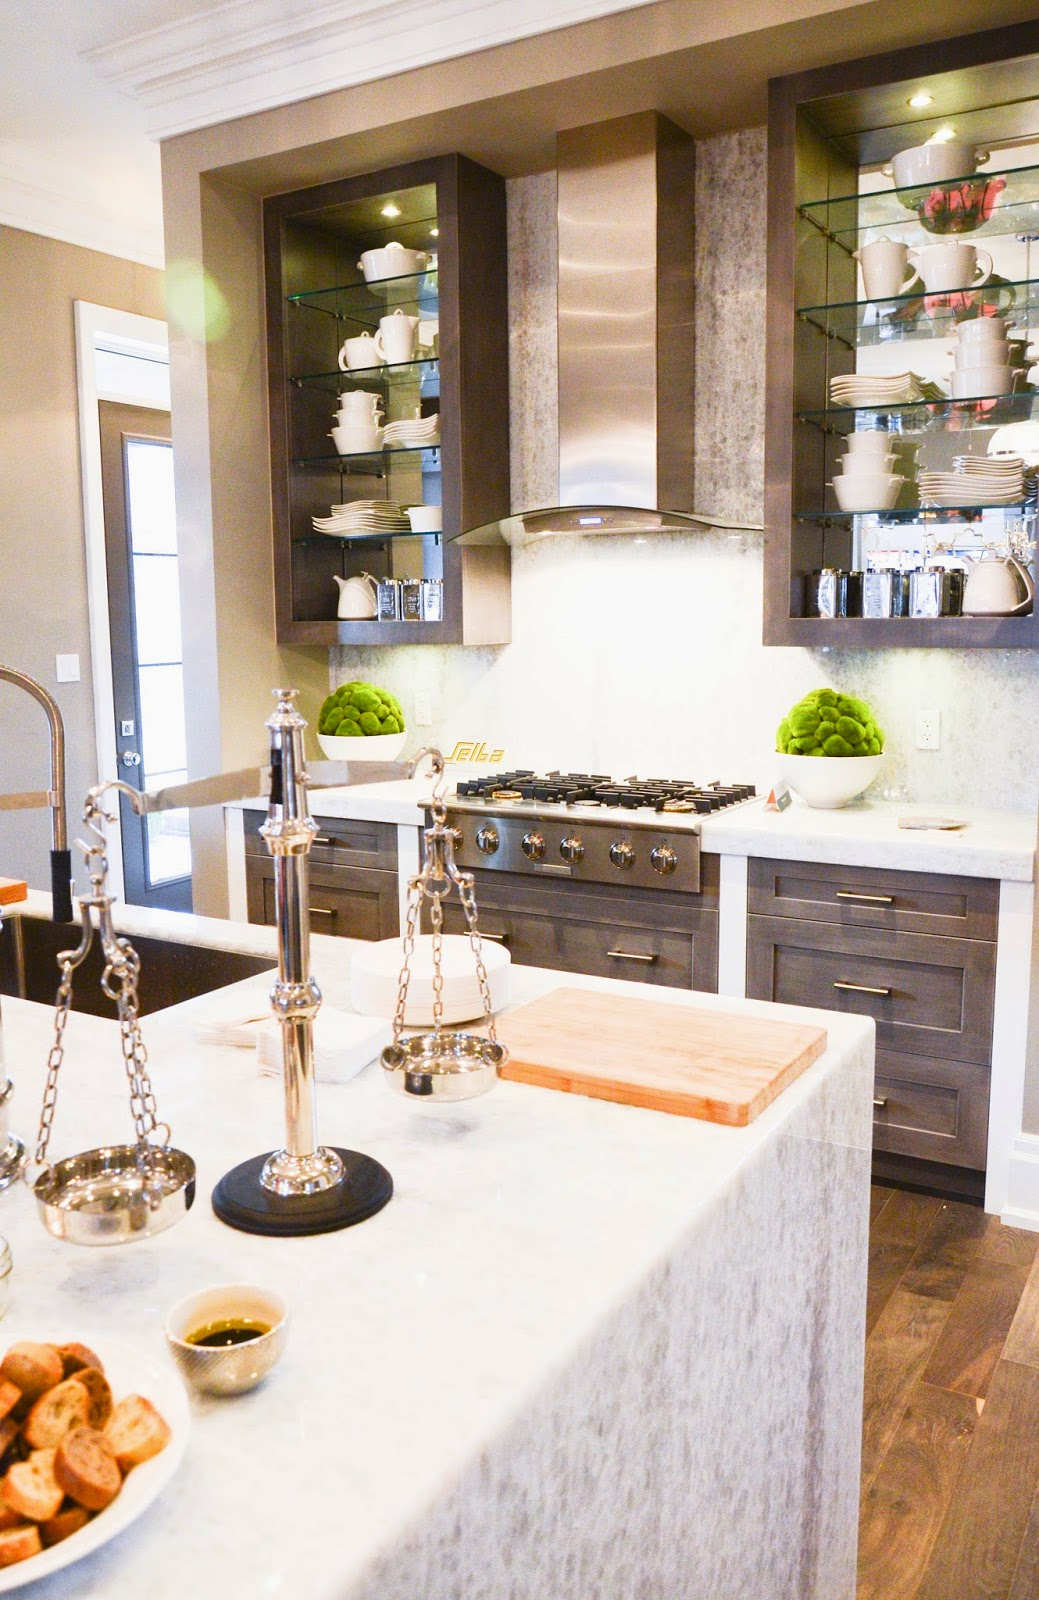 PMLOTTO KLEINBURG SHOWROOM: Chef's kitchen